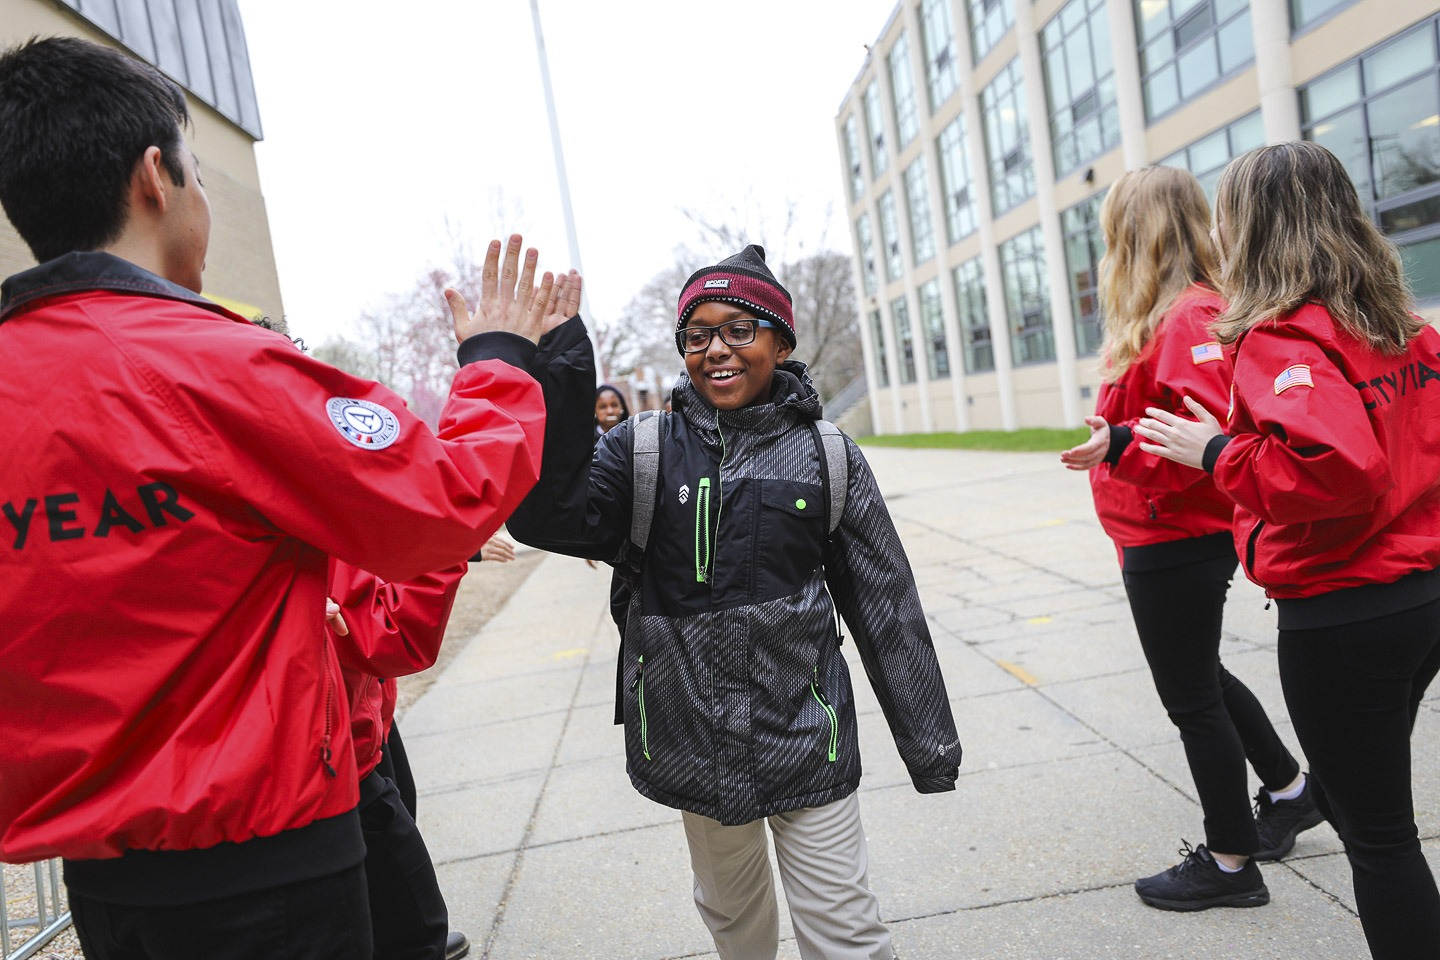 An elementary school student wearing glasses high fives a City Year AmeriCorps member outside their school